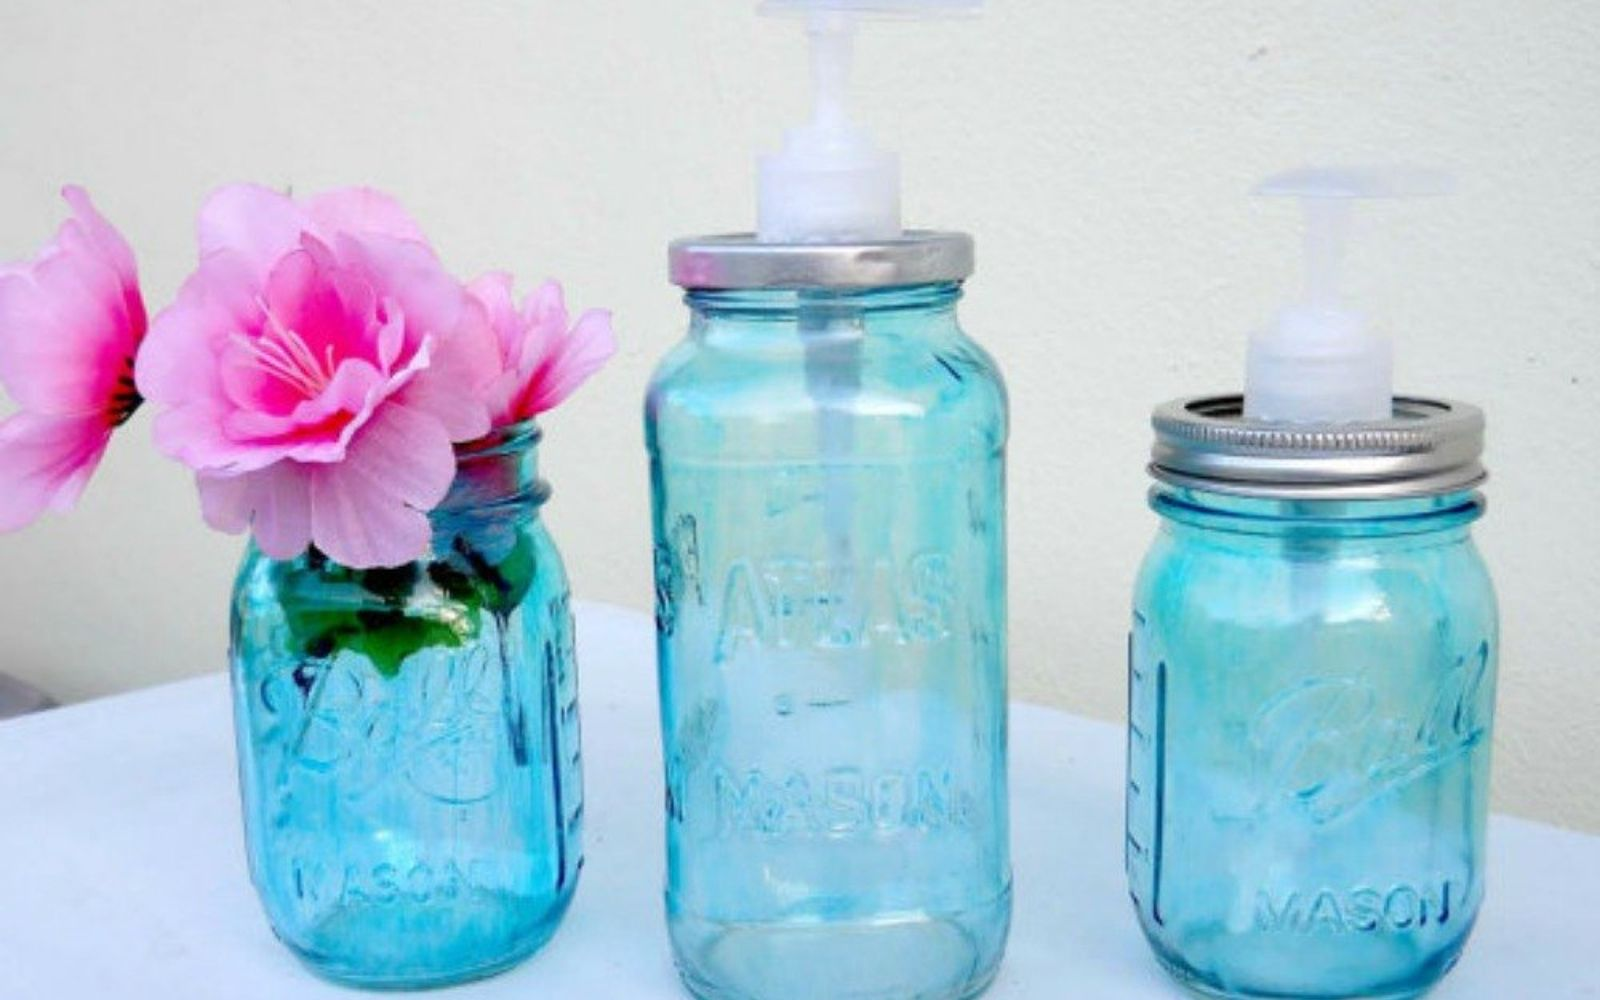 s 14 exciting mason jar ideas you just have to try, mason jars, 5 The stunning soap dispenser